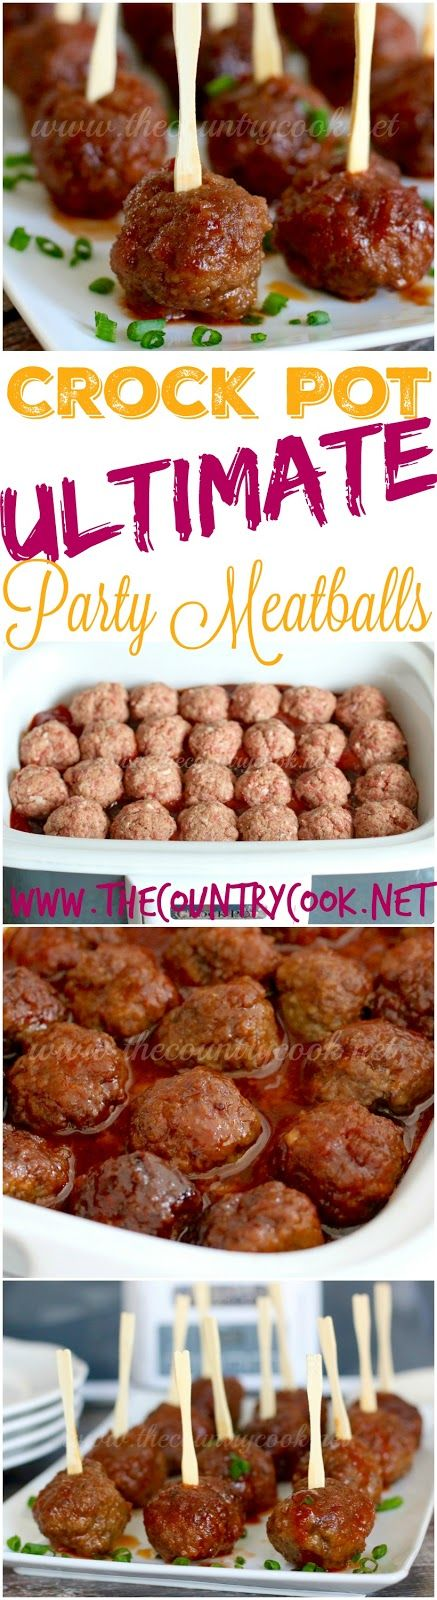 The *ULTIMATE* Crock Pot Party Meatballs recipe from The Country Cook. An AMAZING homemade meatball recipe! The glaze that it cooks in is to die for. Our new favorite! Perfect for holiday parties or tailgating or whenever. #ad